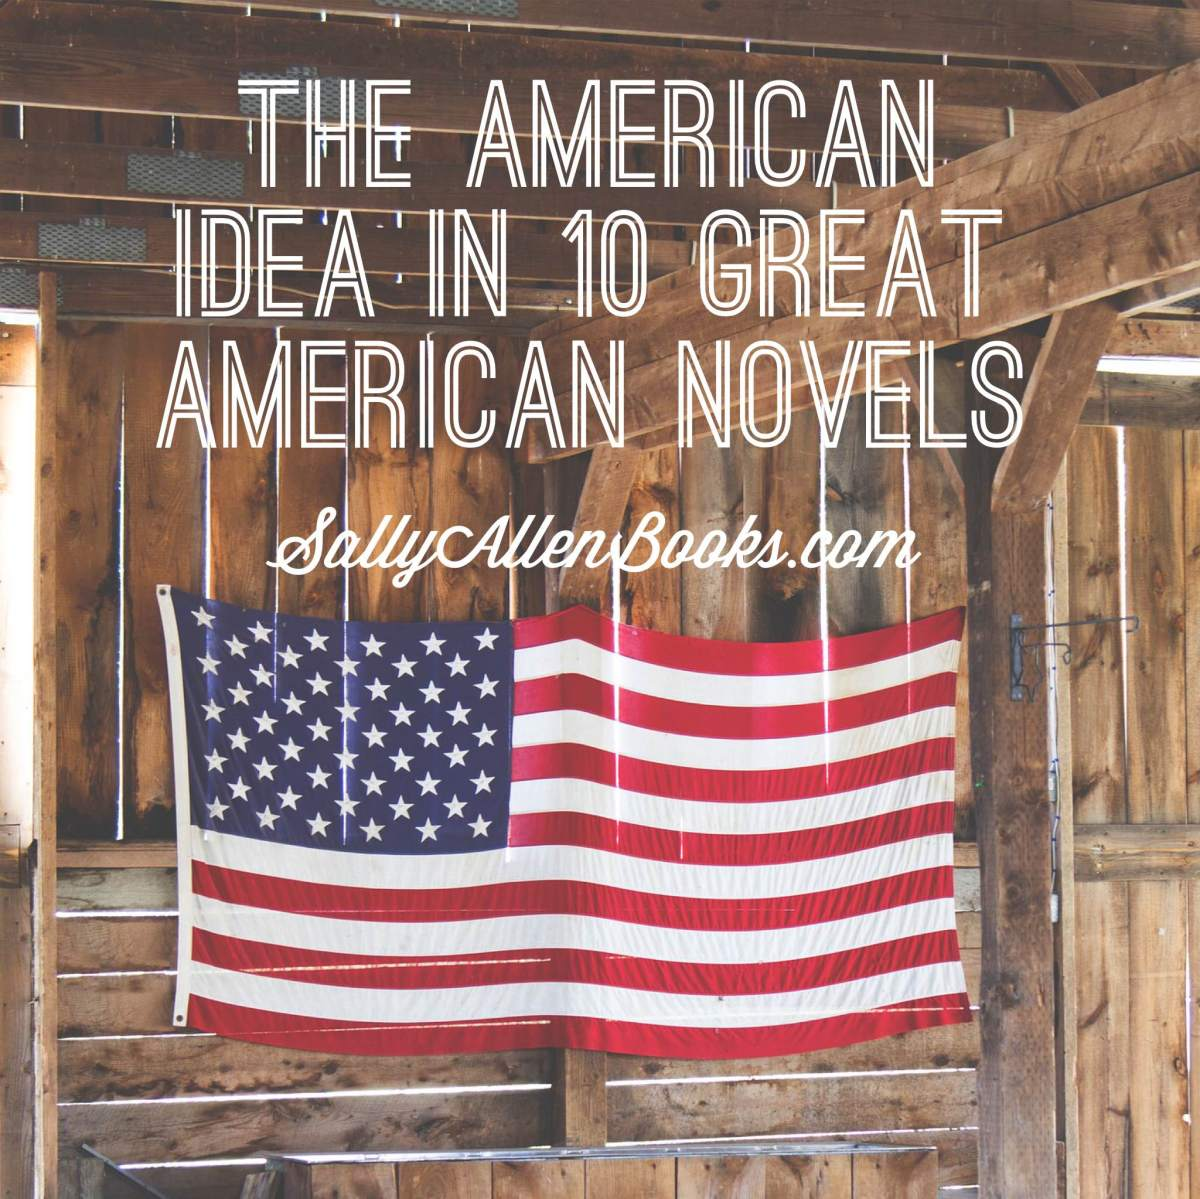 The American Idea in 10 Great American Novels